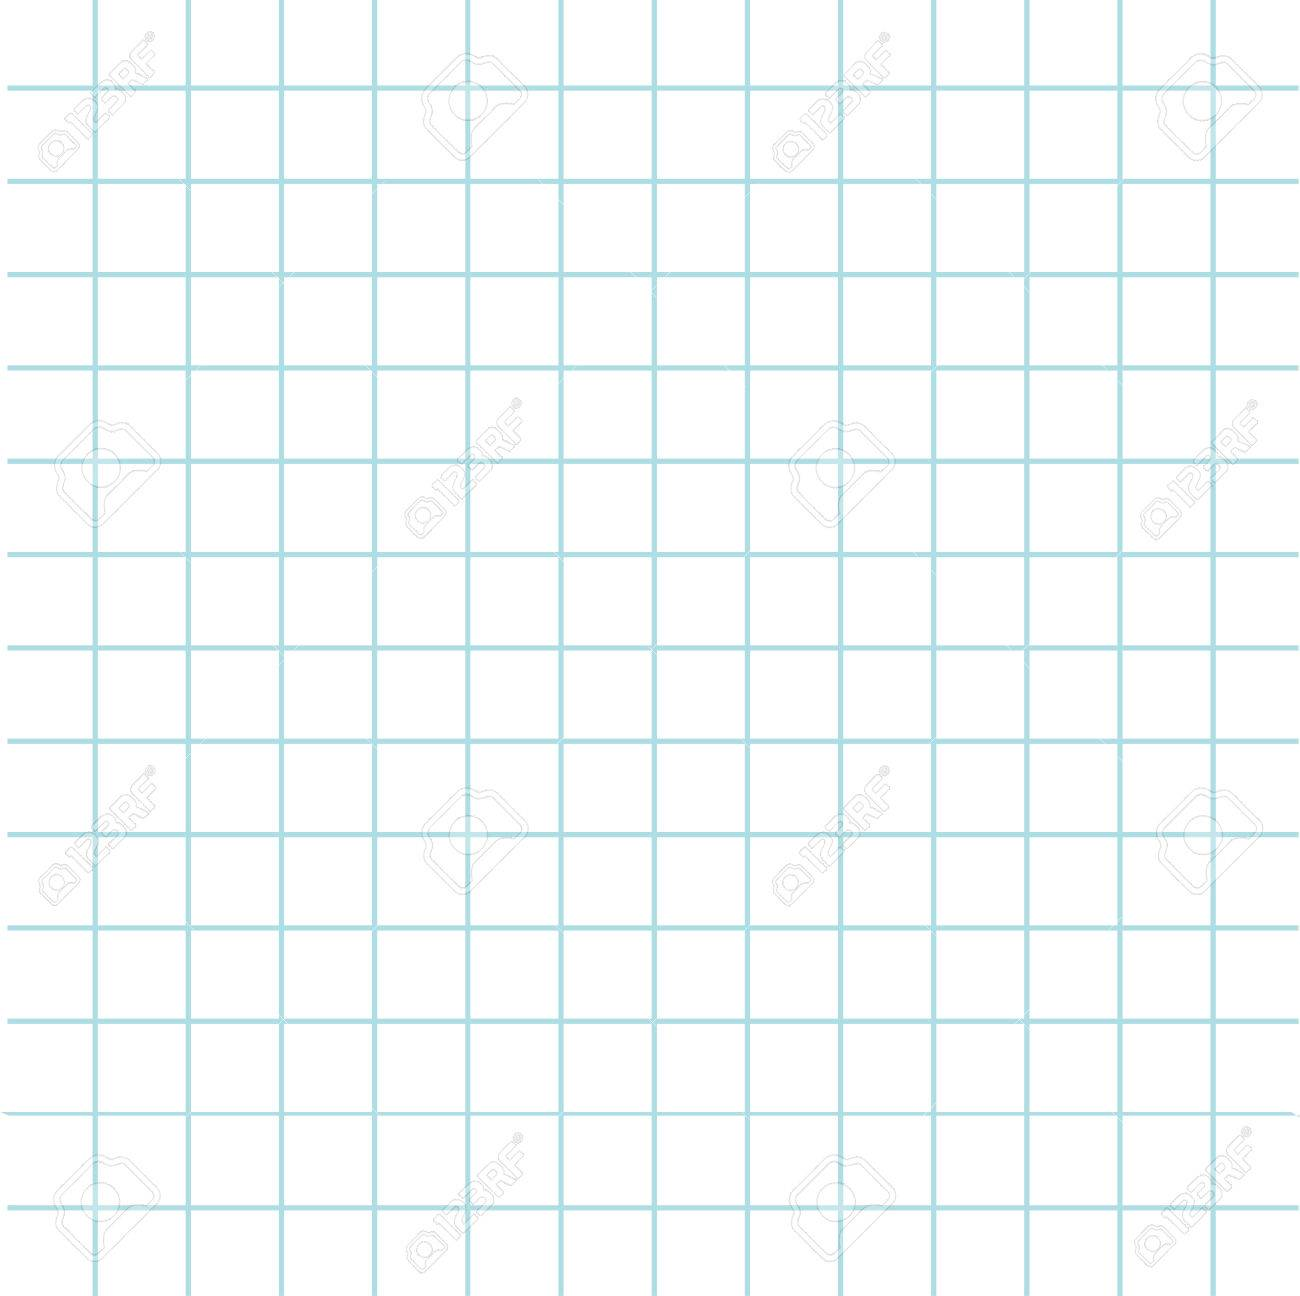 Notebook Paper Texture Cell Template. Squared Blank Sheet Of Copybook  Background. Flat Design.